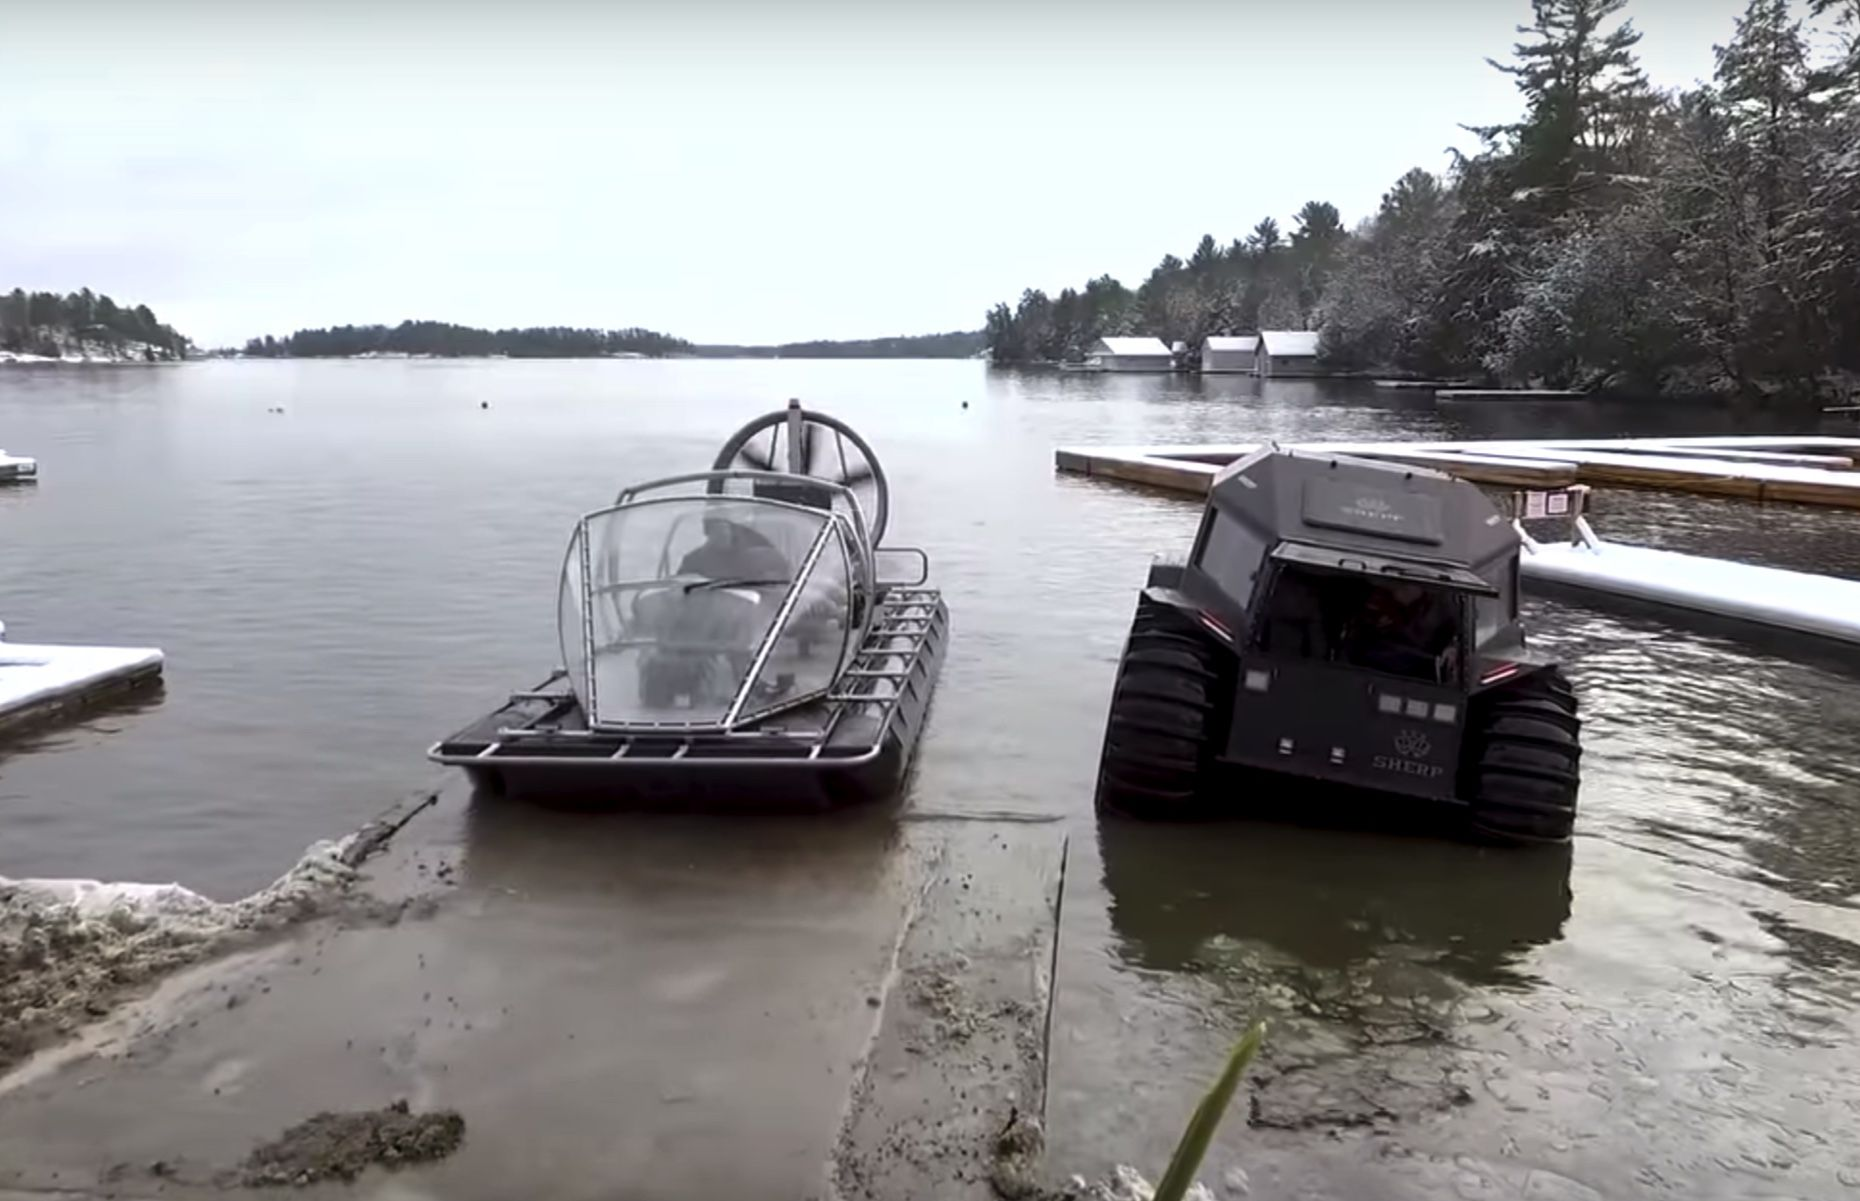 video- check out these two rugged amphibious vehicles built for (and now in) the canadian north